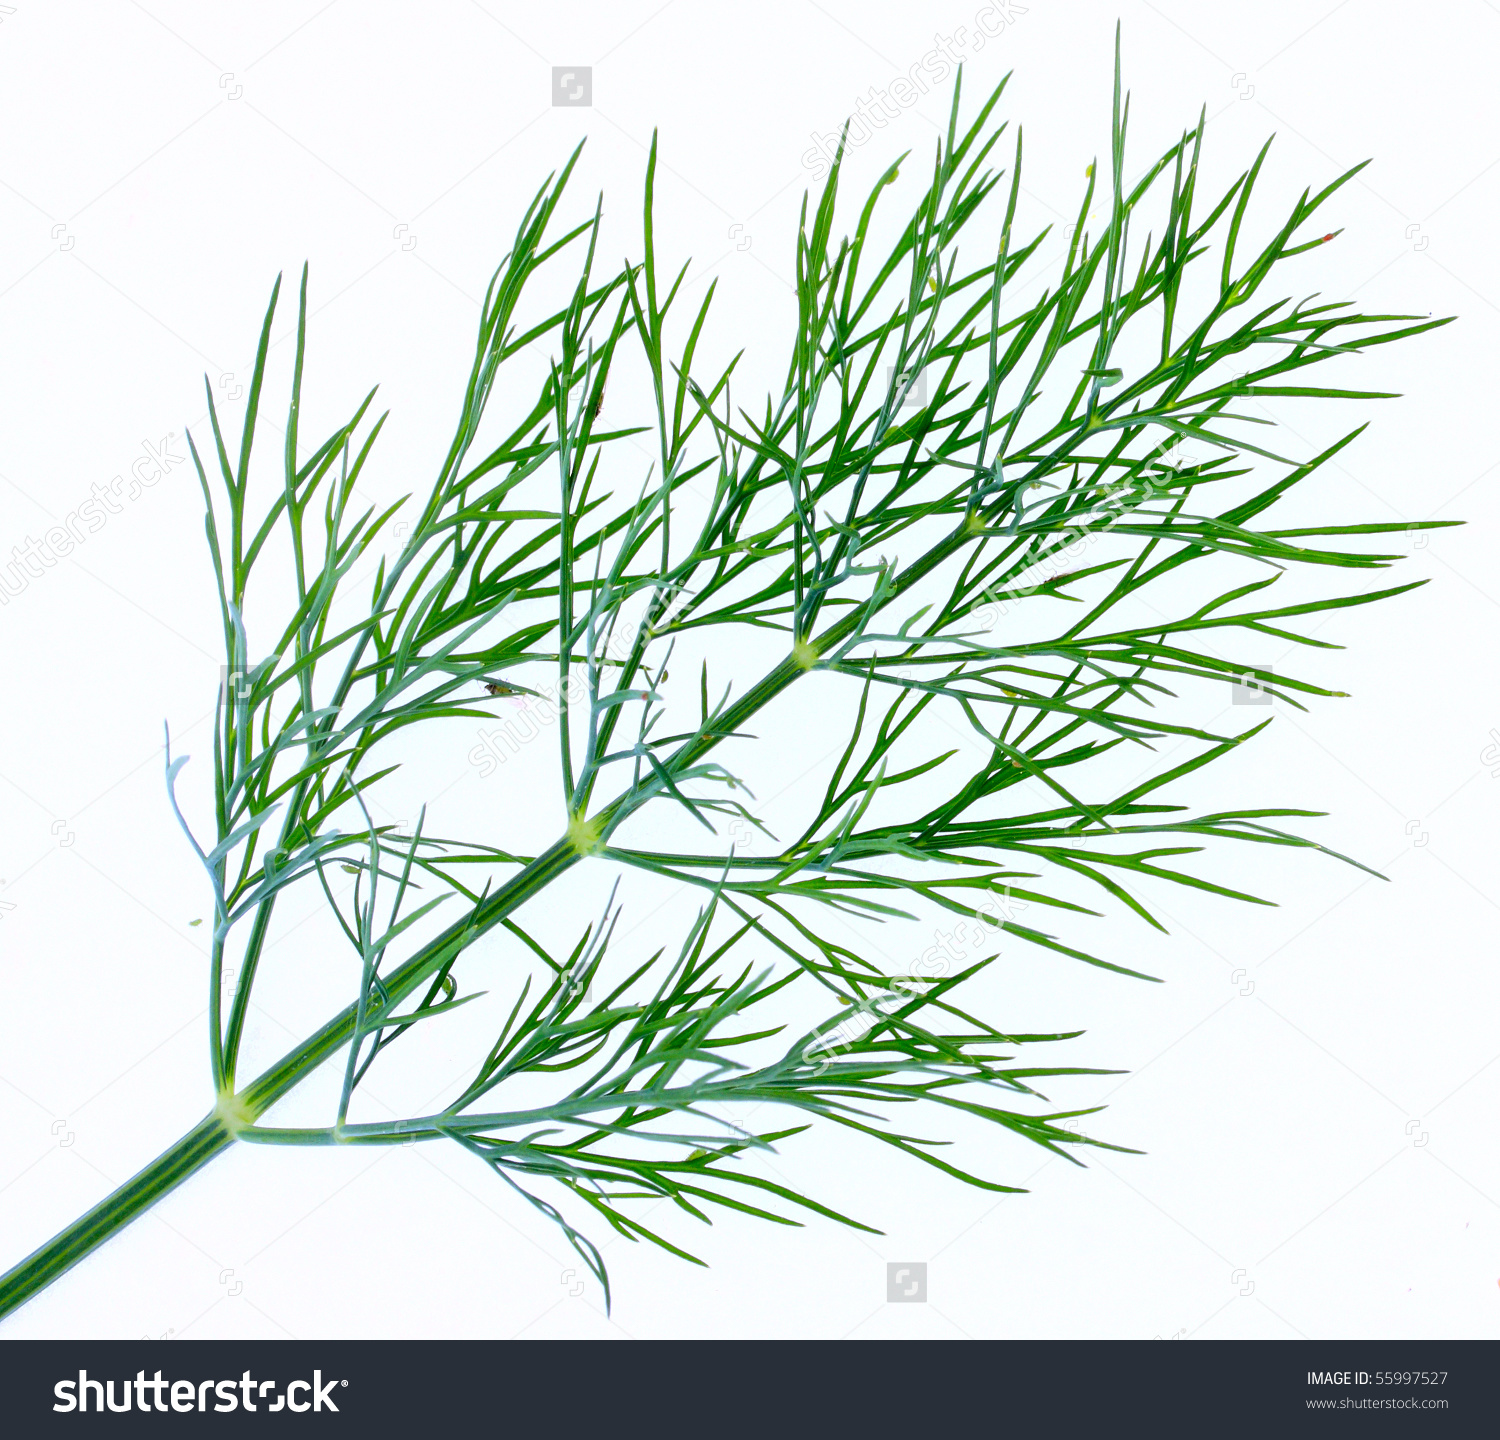 Dill Anethum Graveolens Fresh Dried Dill Stock Photo 55997527.